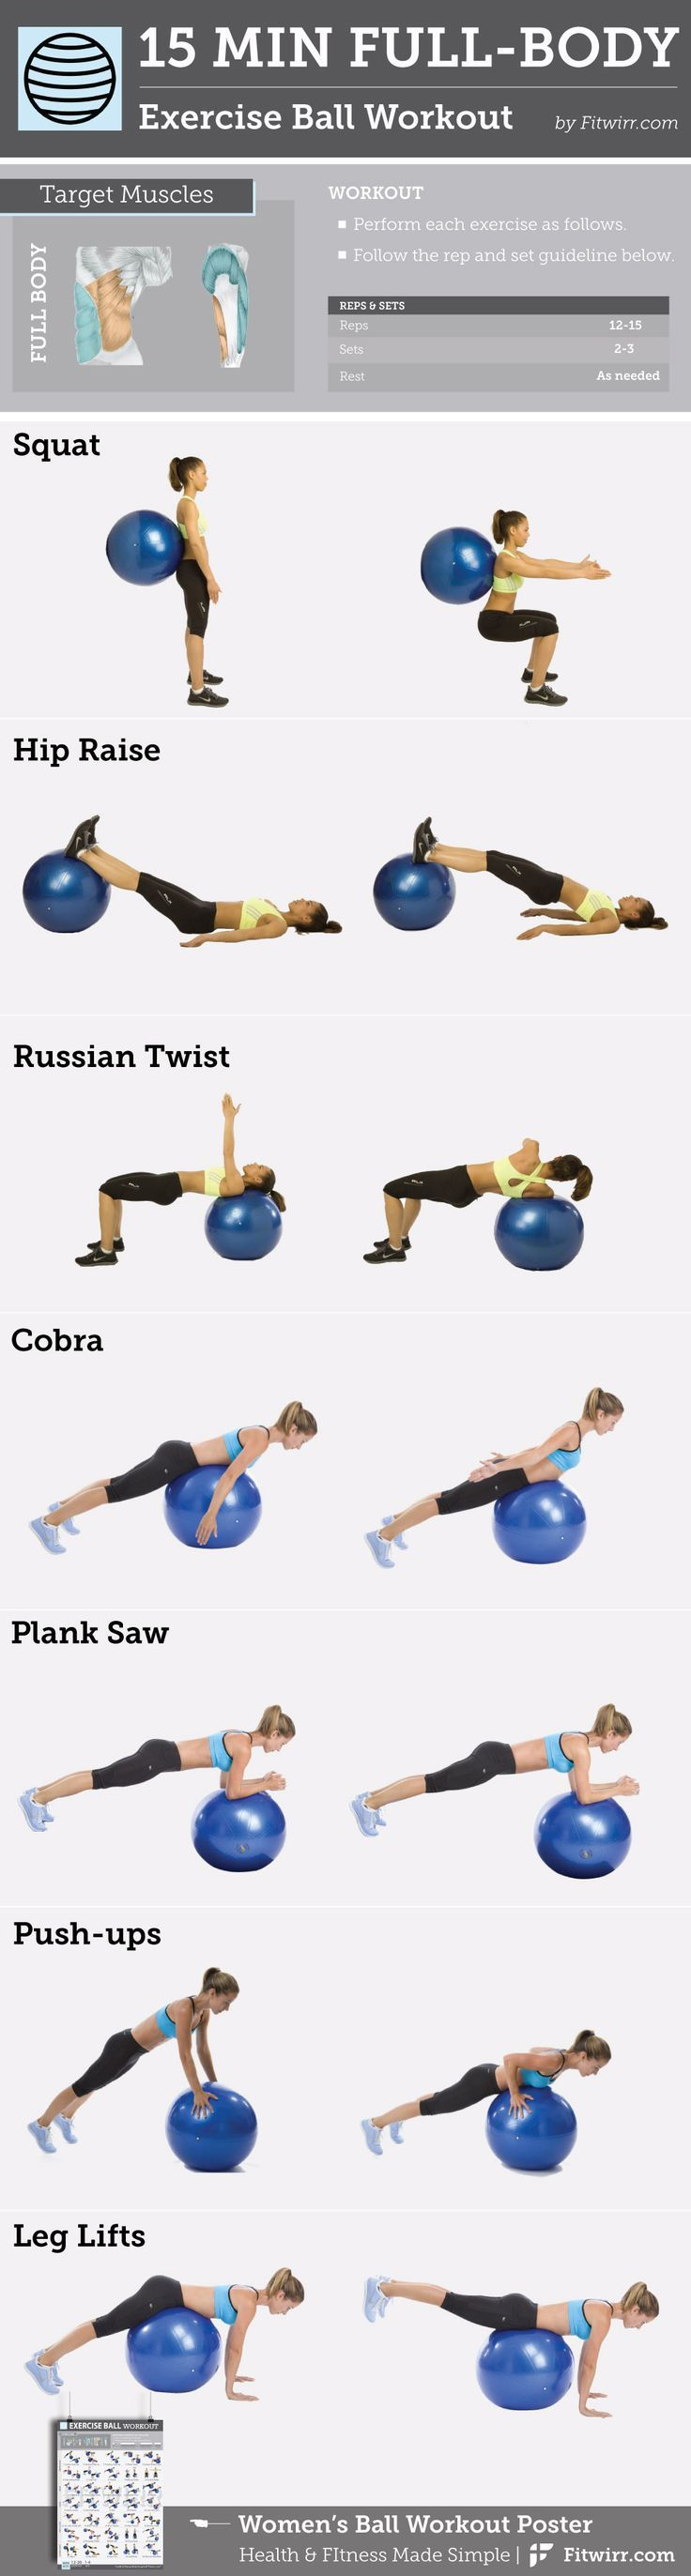 15-Minute Full-Body Exercise Ball #Workout content @ www.pinterest.com...